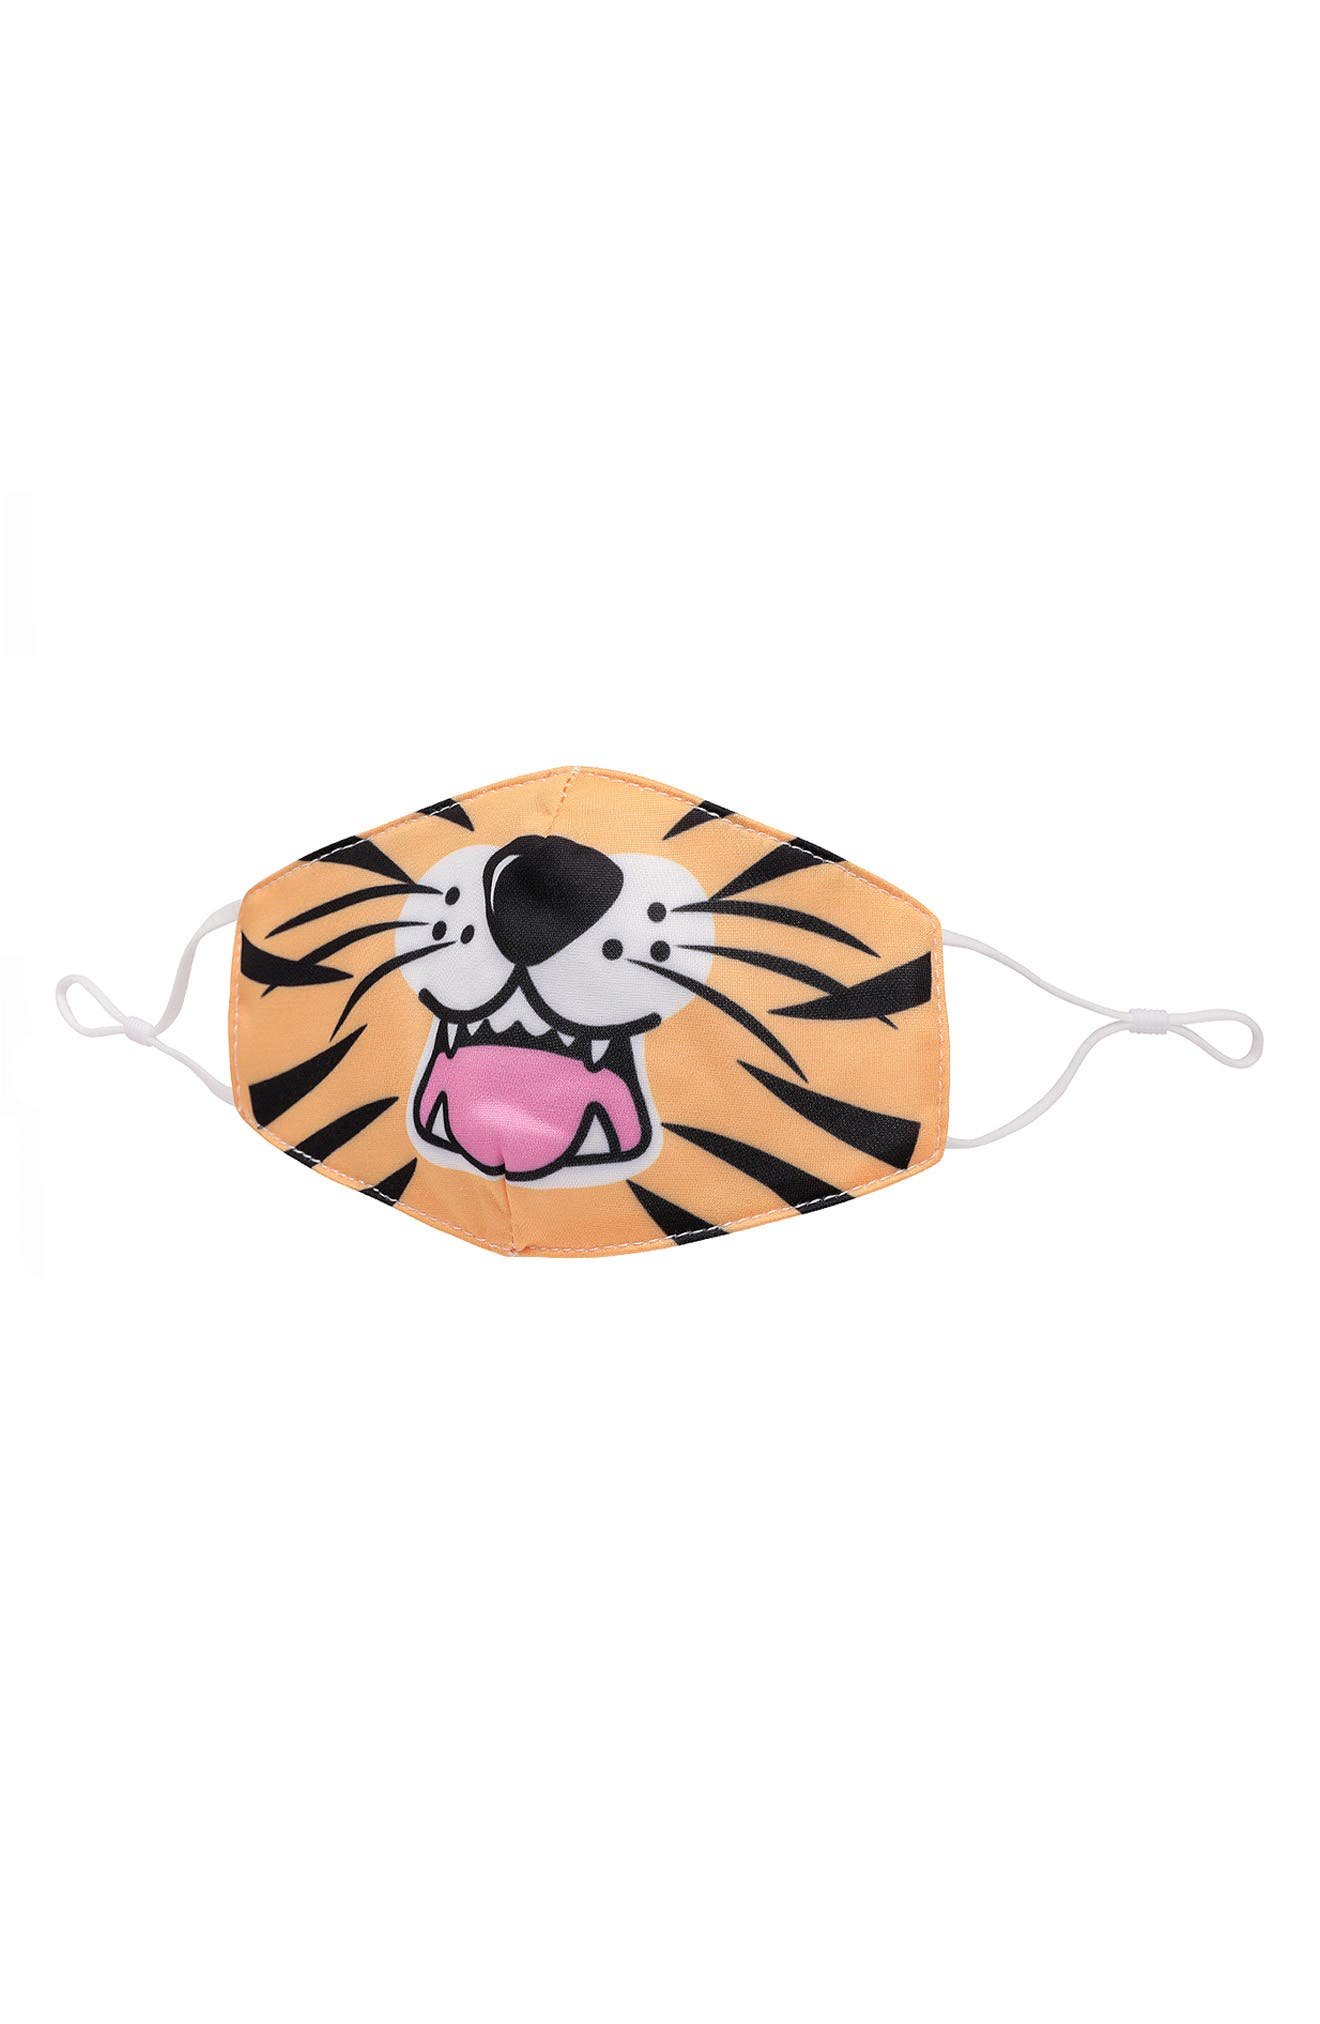 Image of OMG! Accessories Crouching Tiger Face Mask